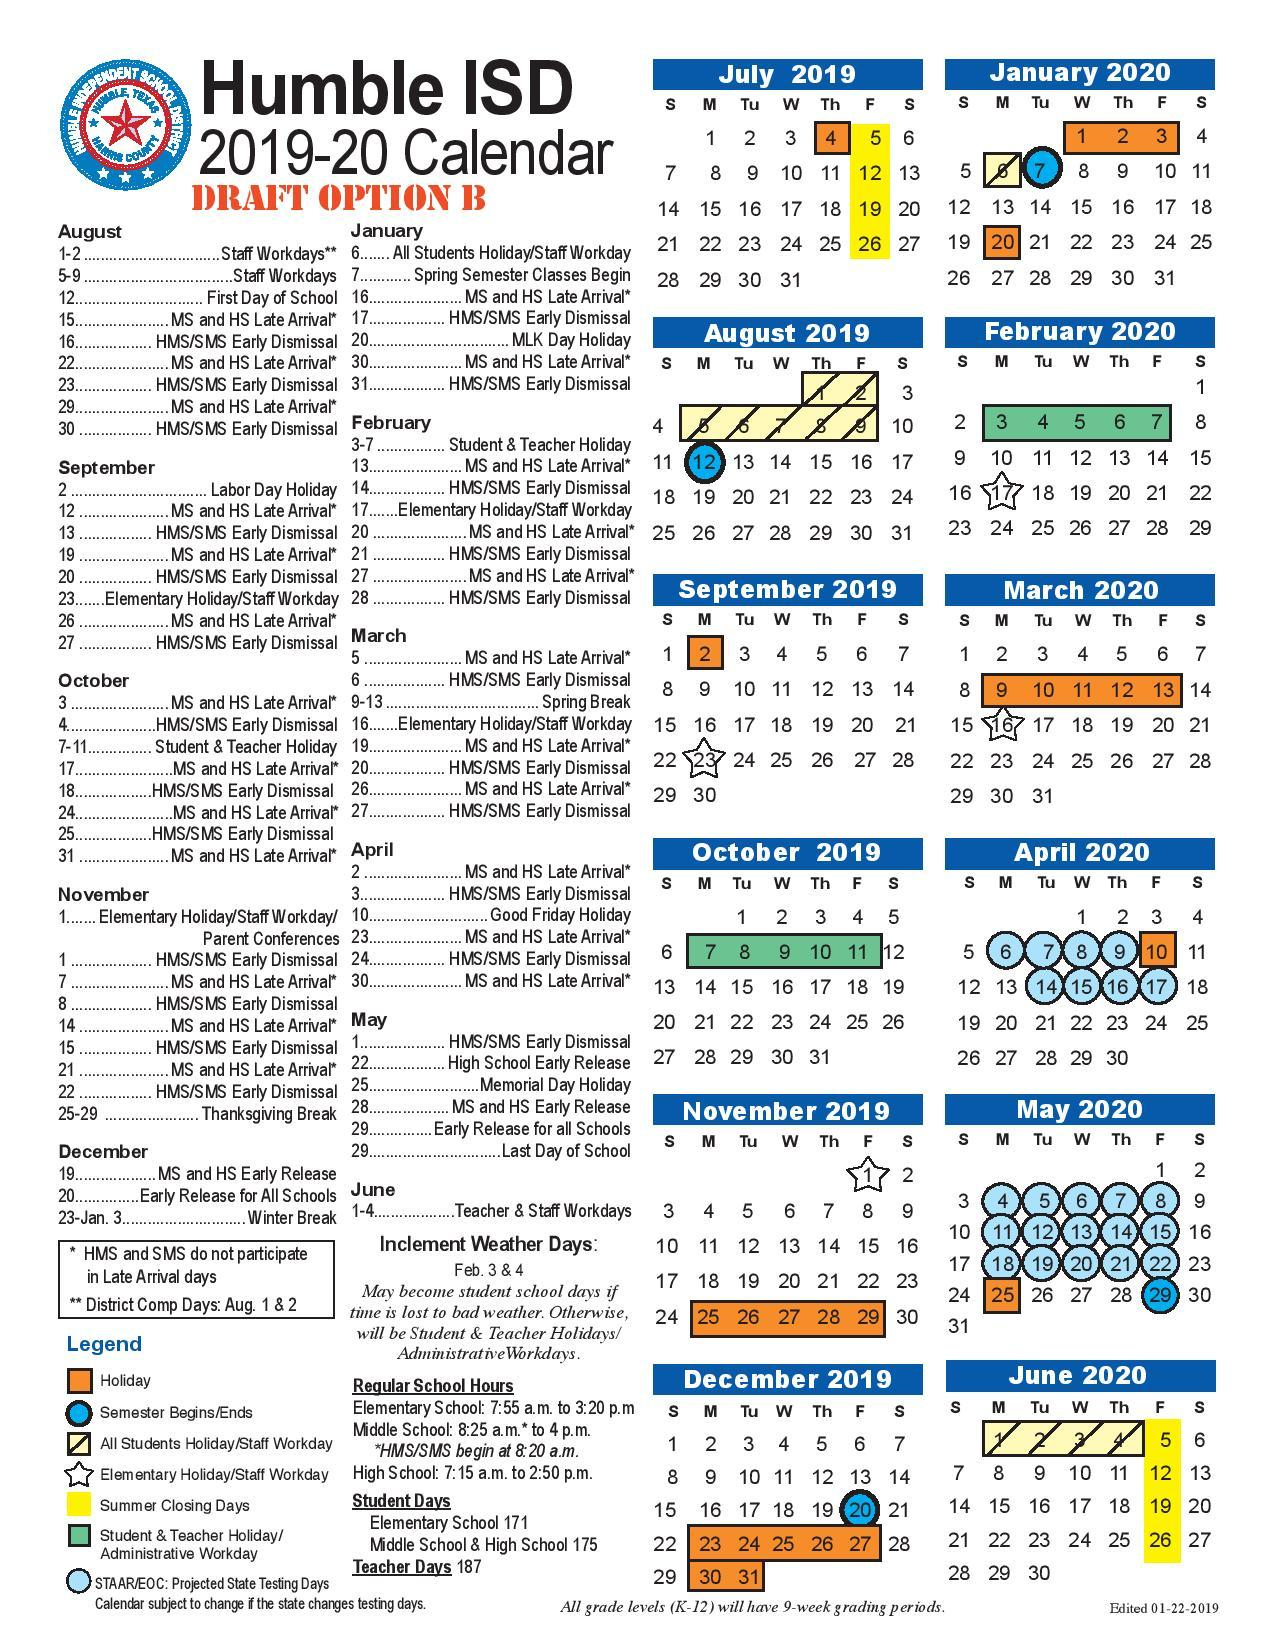 Humble Isd Adds Week Long Vacations In February, October To With Brownsville Bisd School District Calendar